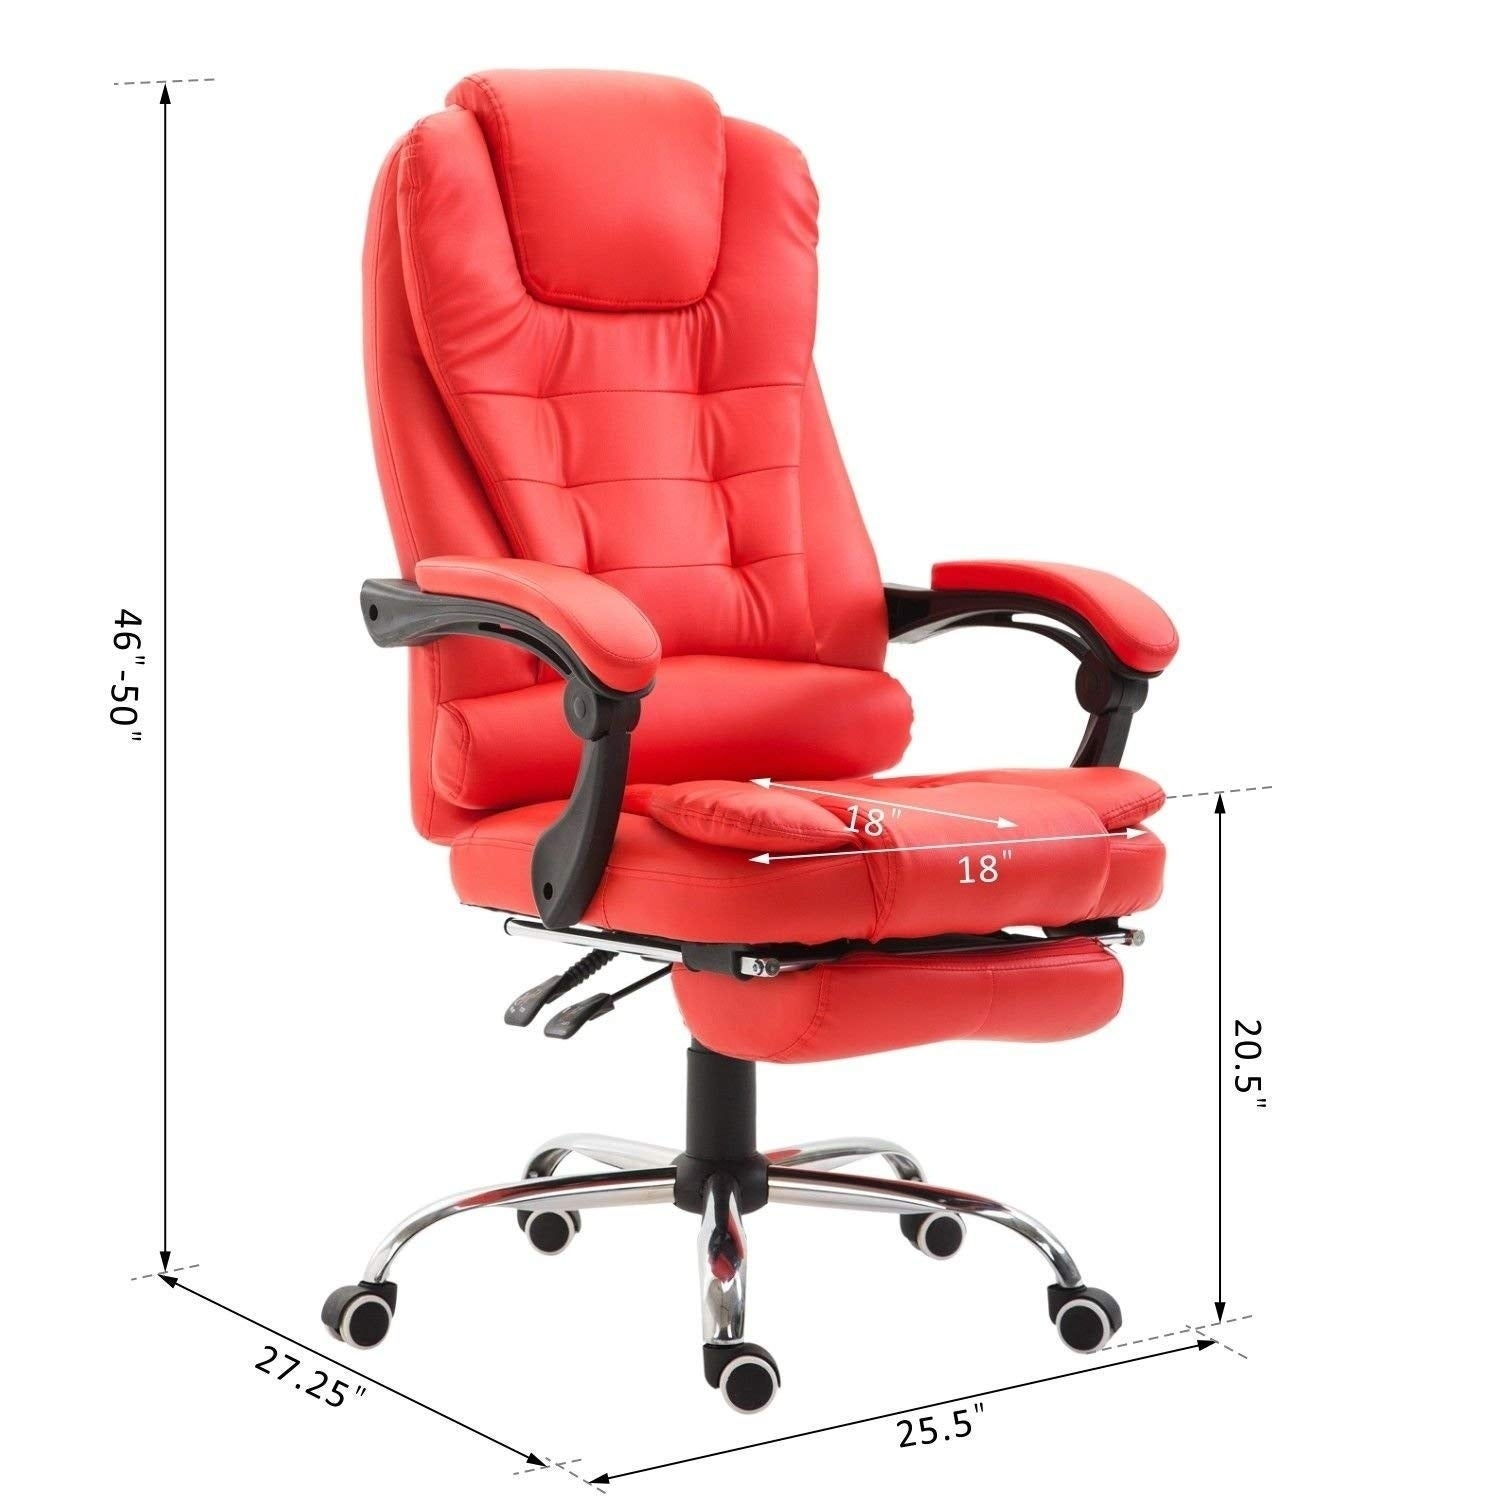 Prime Homcom High Back Reclining Pu Leather Executive Home Office Chair With Retractable Footrest Red Dailytribune Chair Design For Home Dailytribuneorg